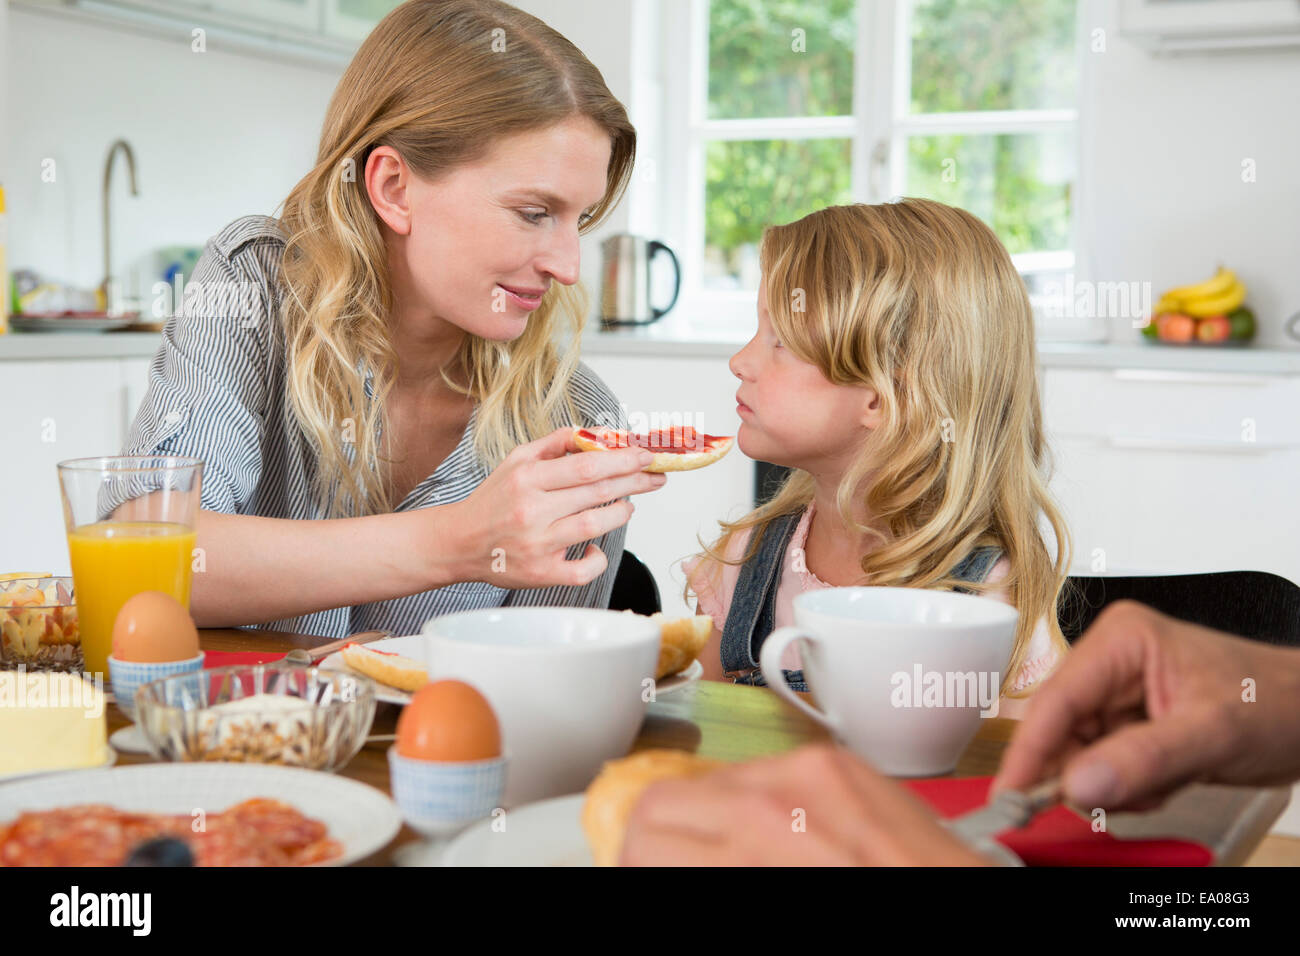 Mother offering daughter some food - Stock Image